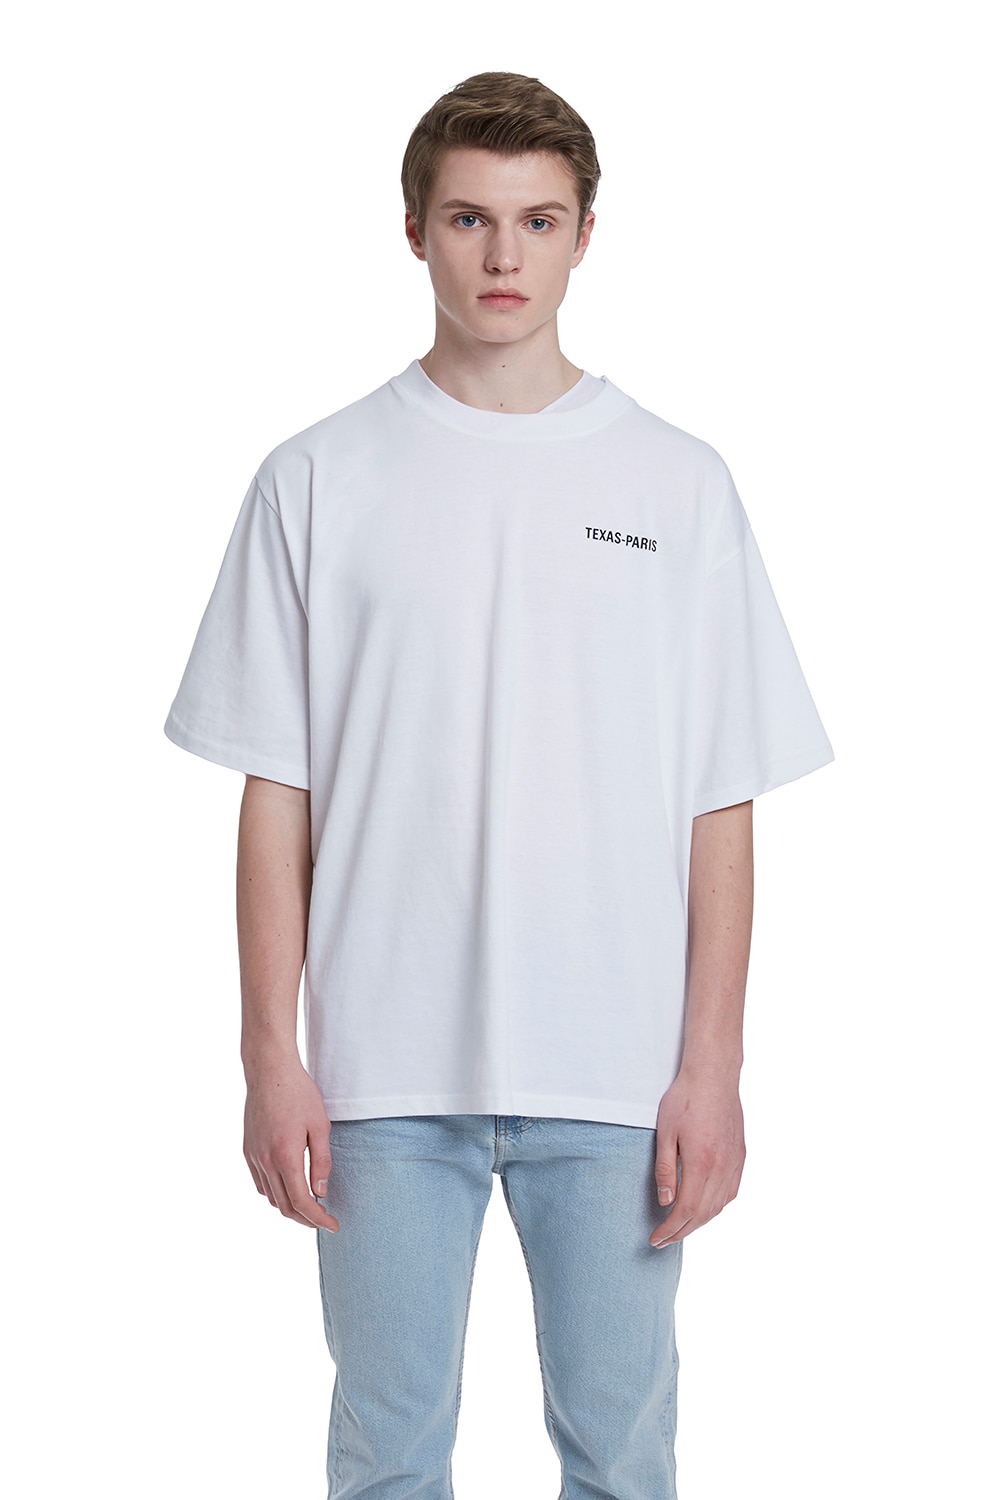 Asymmetric T shirts